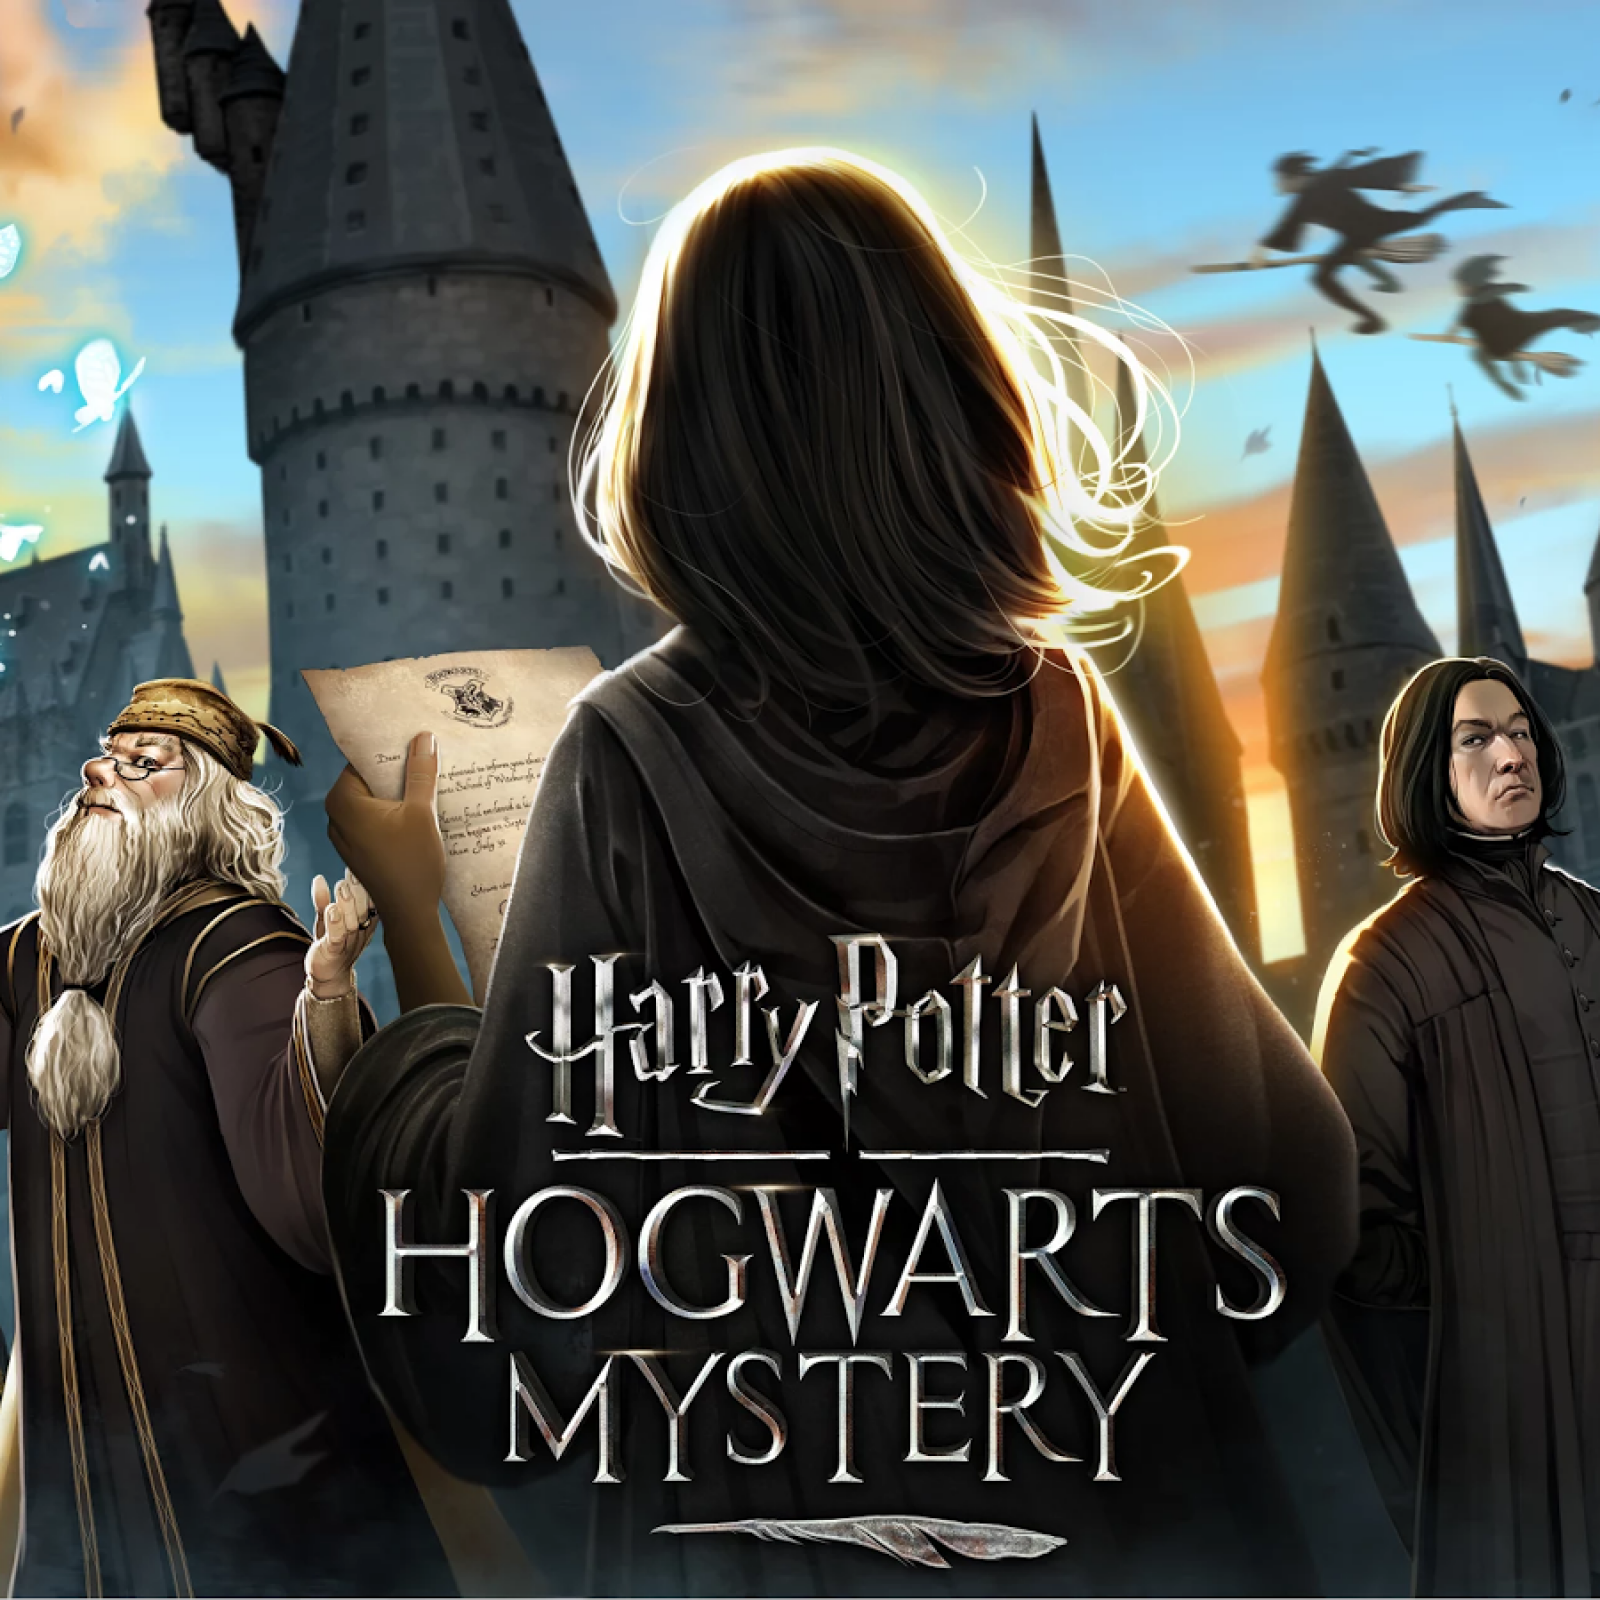 Harry potter hogwarts mystery beginners guide wands houses characters and more